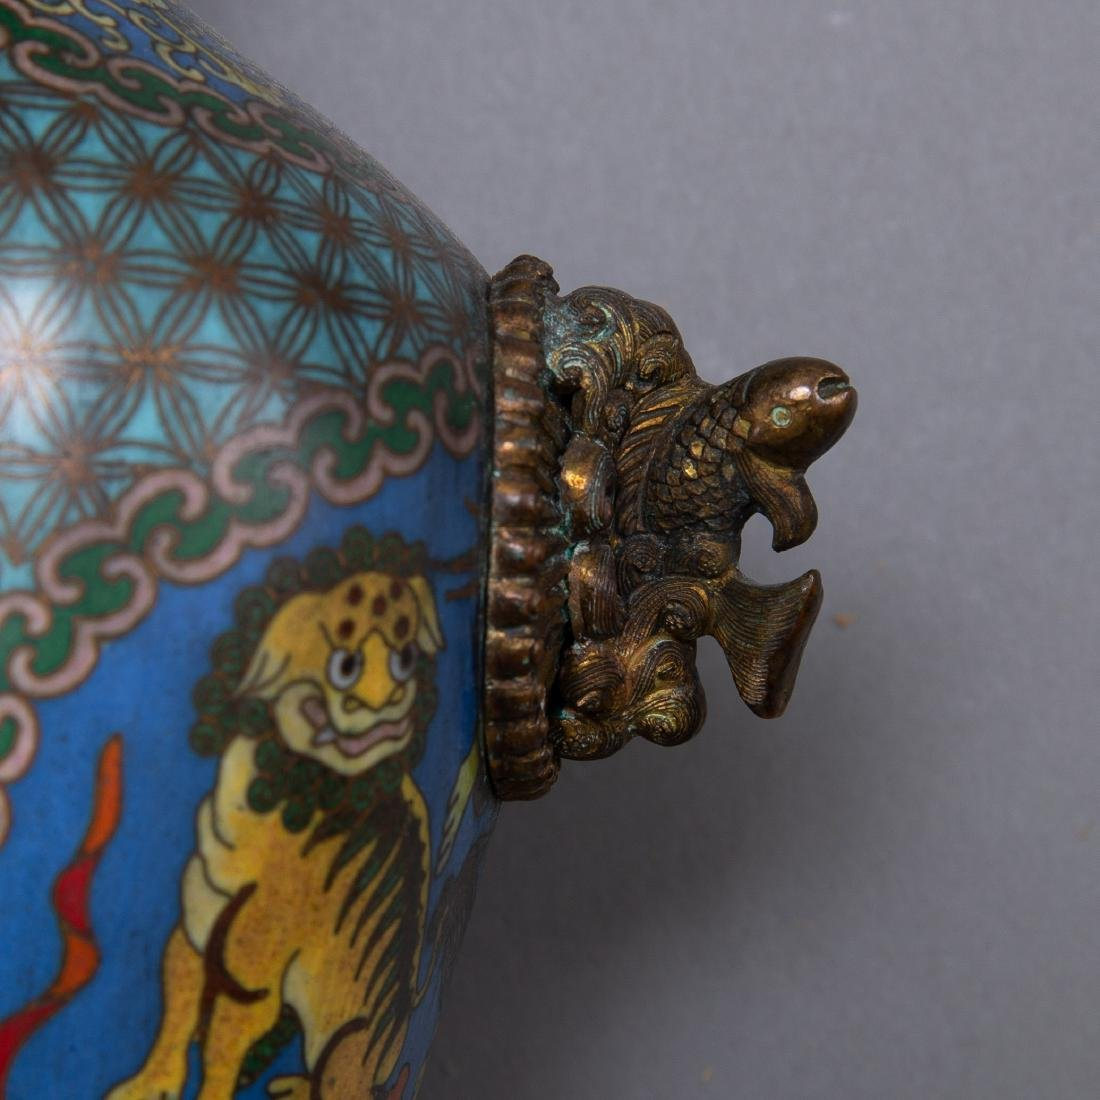 Pr 20th c. Japanese Cloisonne Vases with Foo Dogs - 6